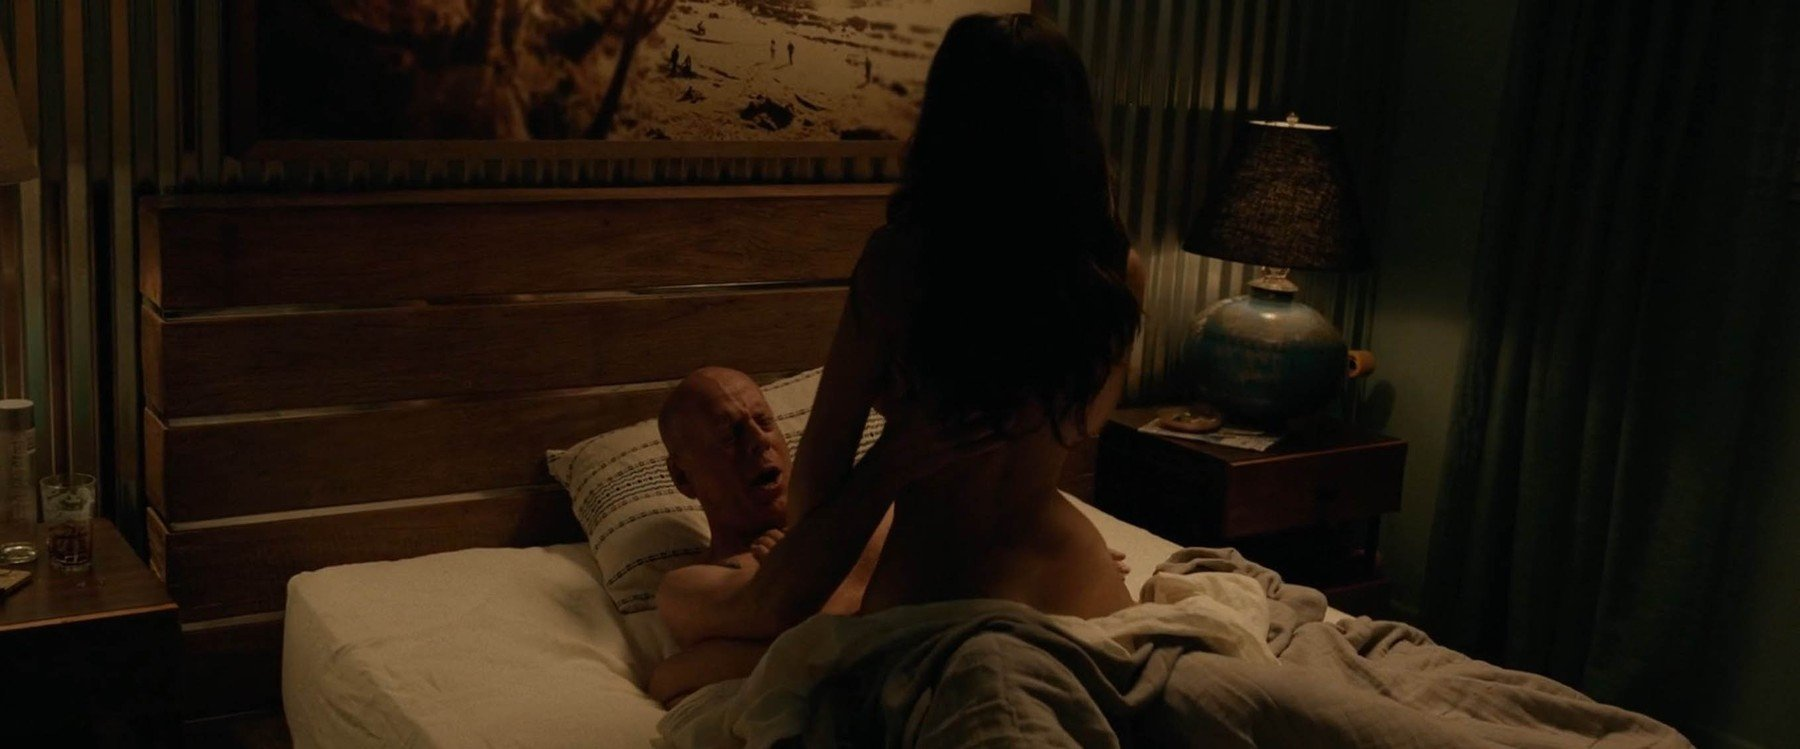 19-6-2017  Jessica Gomes goes nude in sex scenes with Bruce Willis in new film